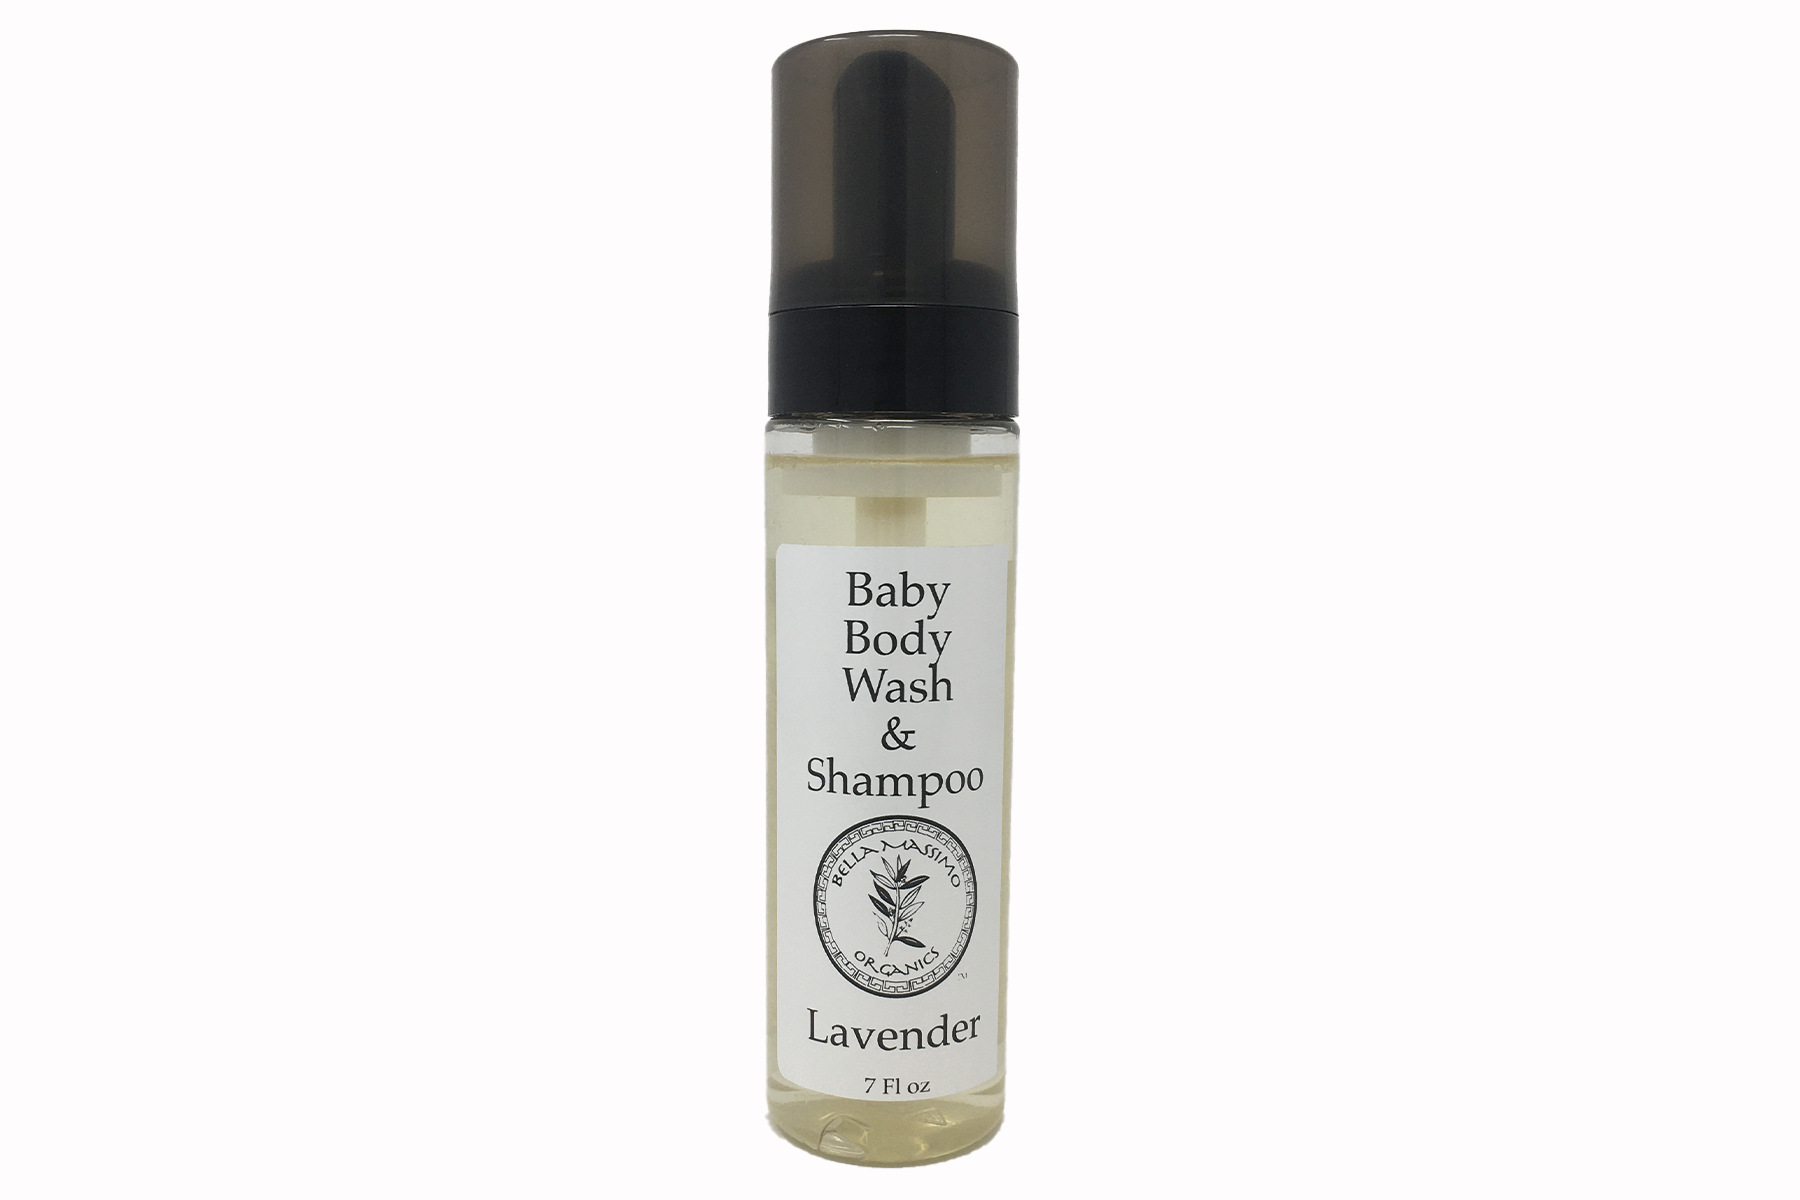 Baby Body Wash & Shampoo